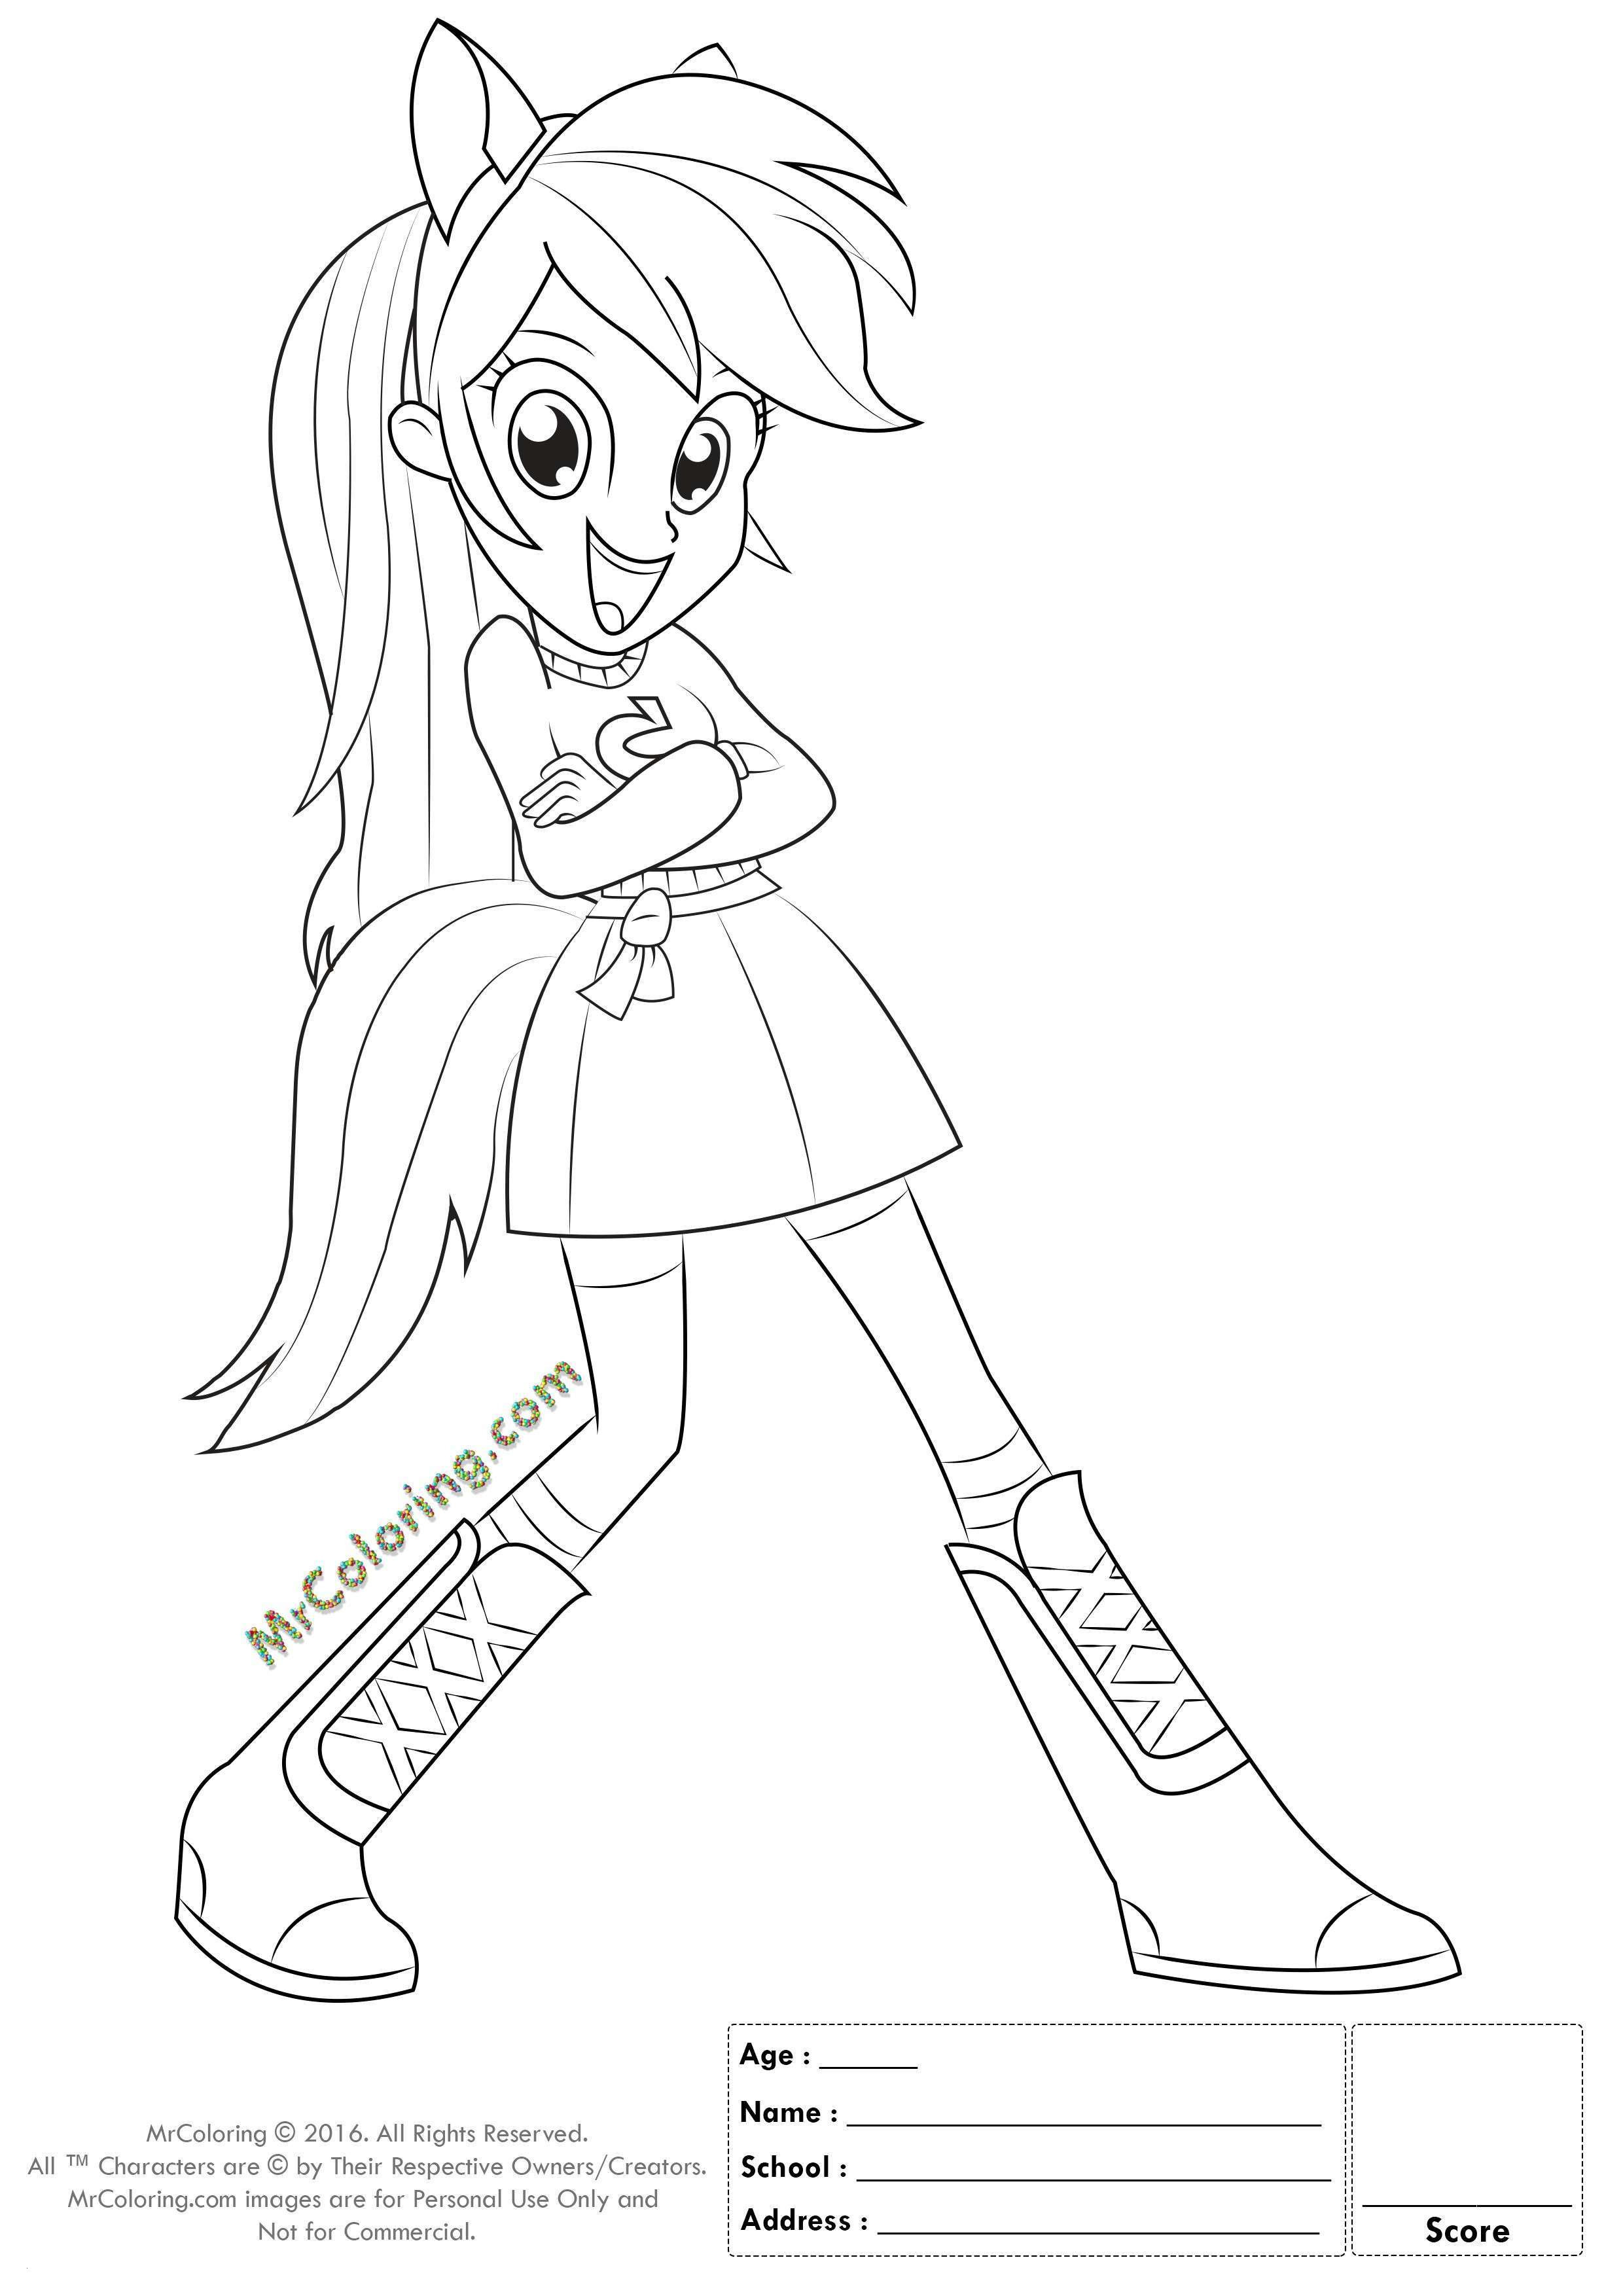 Ausmalbilder My Little Pony Equestria Girl Das Beste Von 20 My Little Pony Equestria Girl Rainbow Dash Coloring Pages Schön Fotos